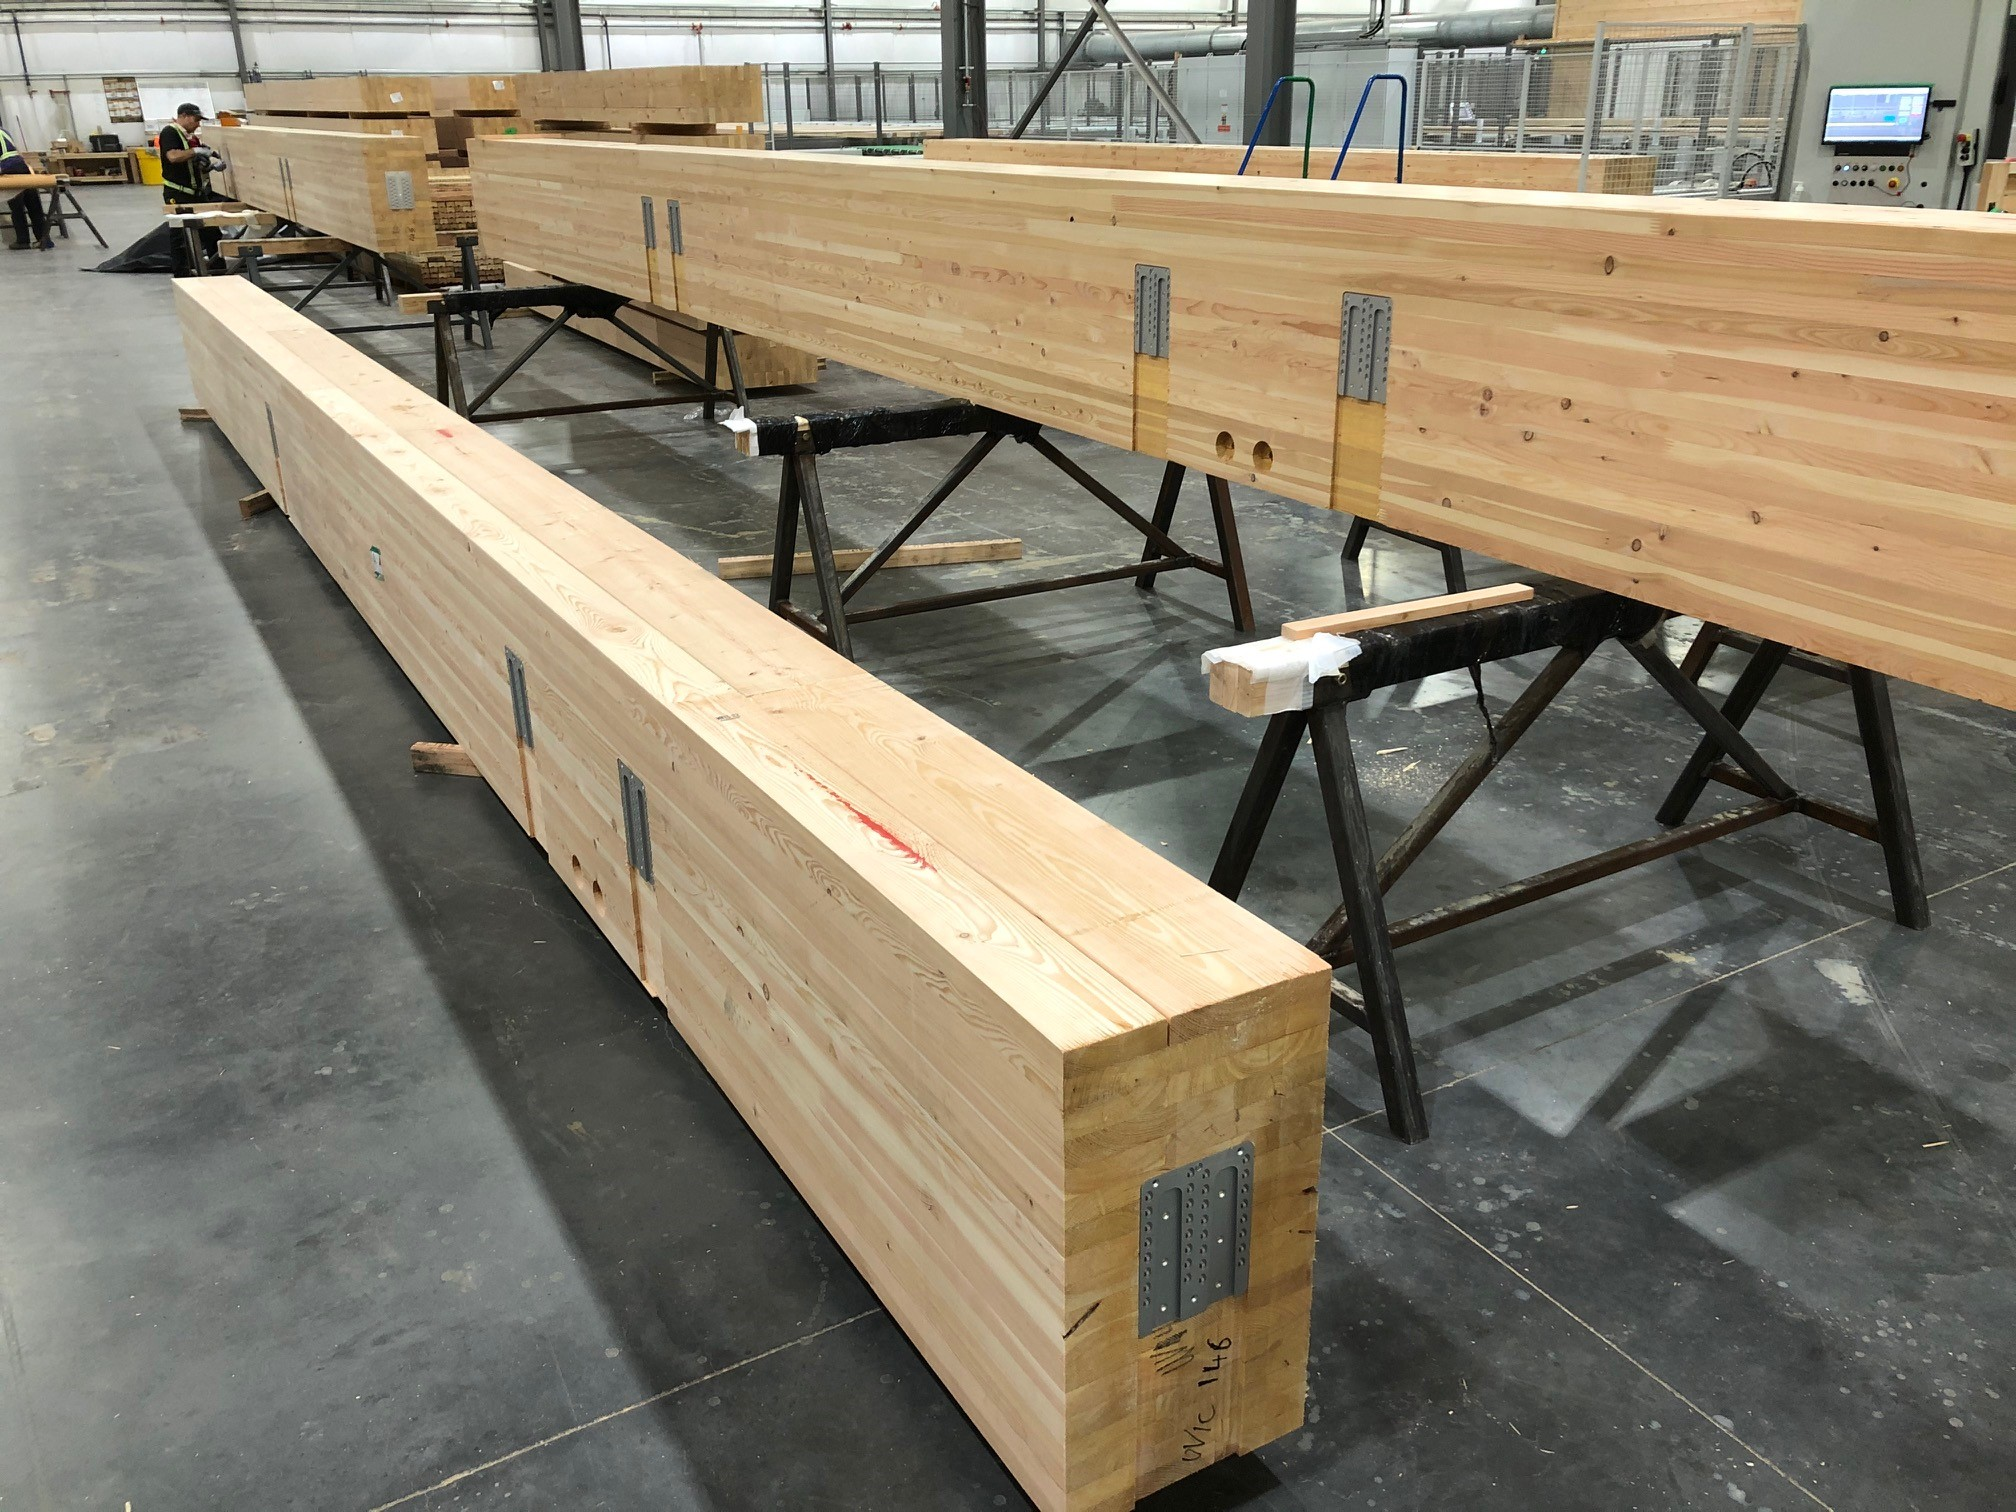 Fir Glulam Beams being prefabricated with hardware